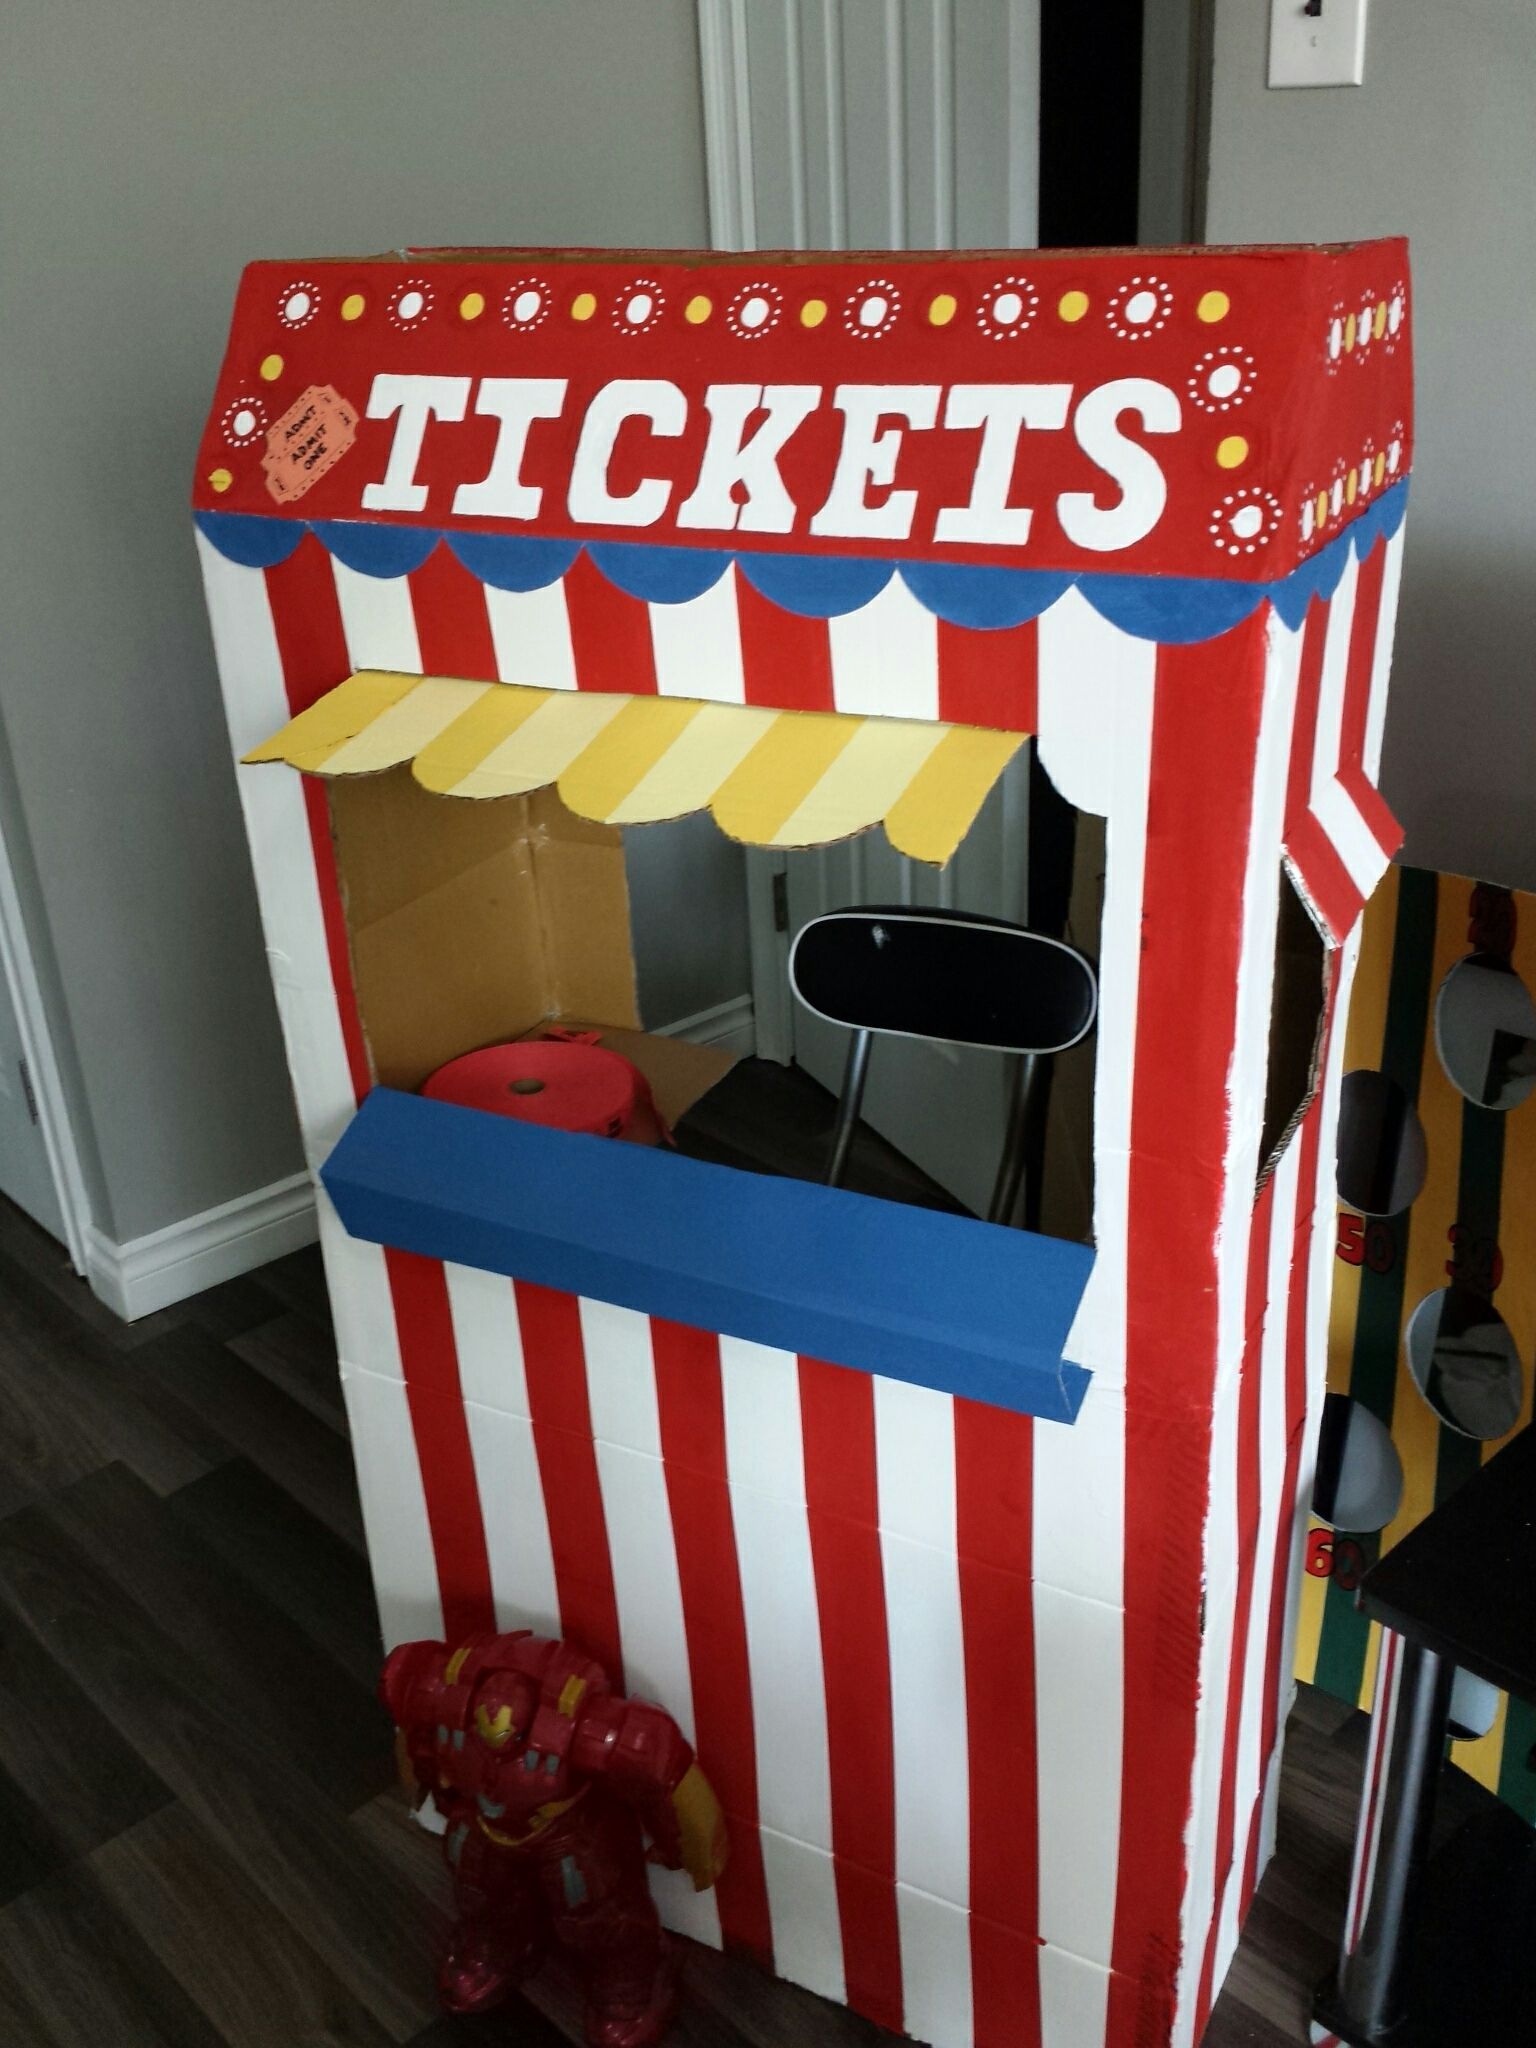 Diy carnival ticket booth | Family reunion ideas in 2019 | Circus